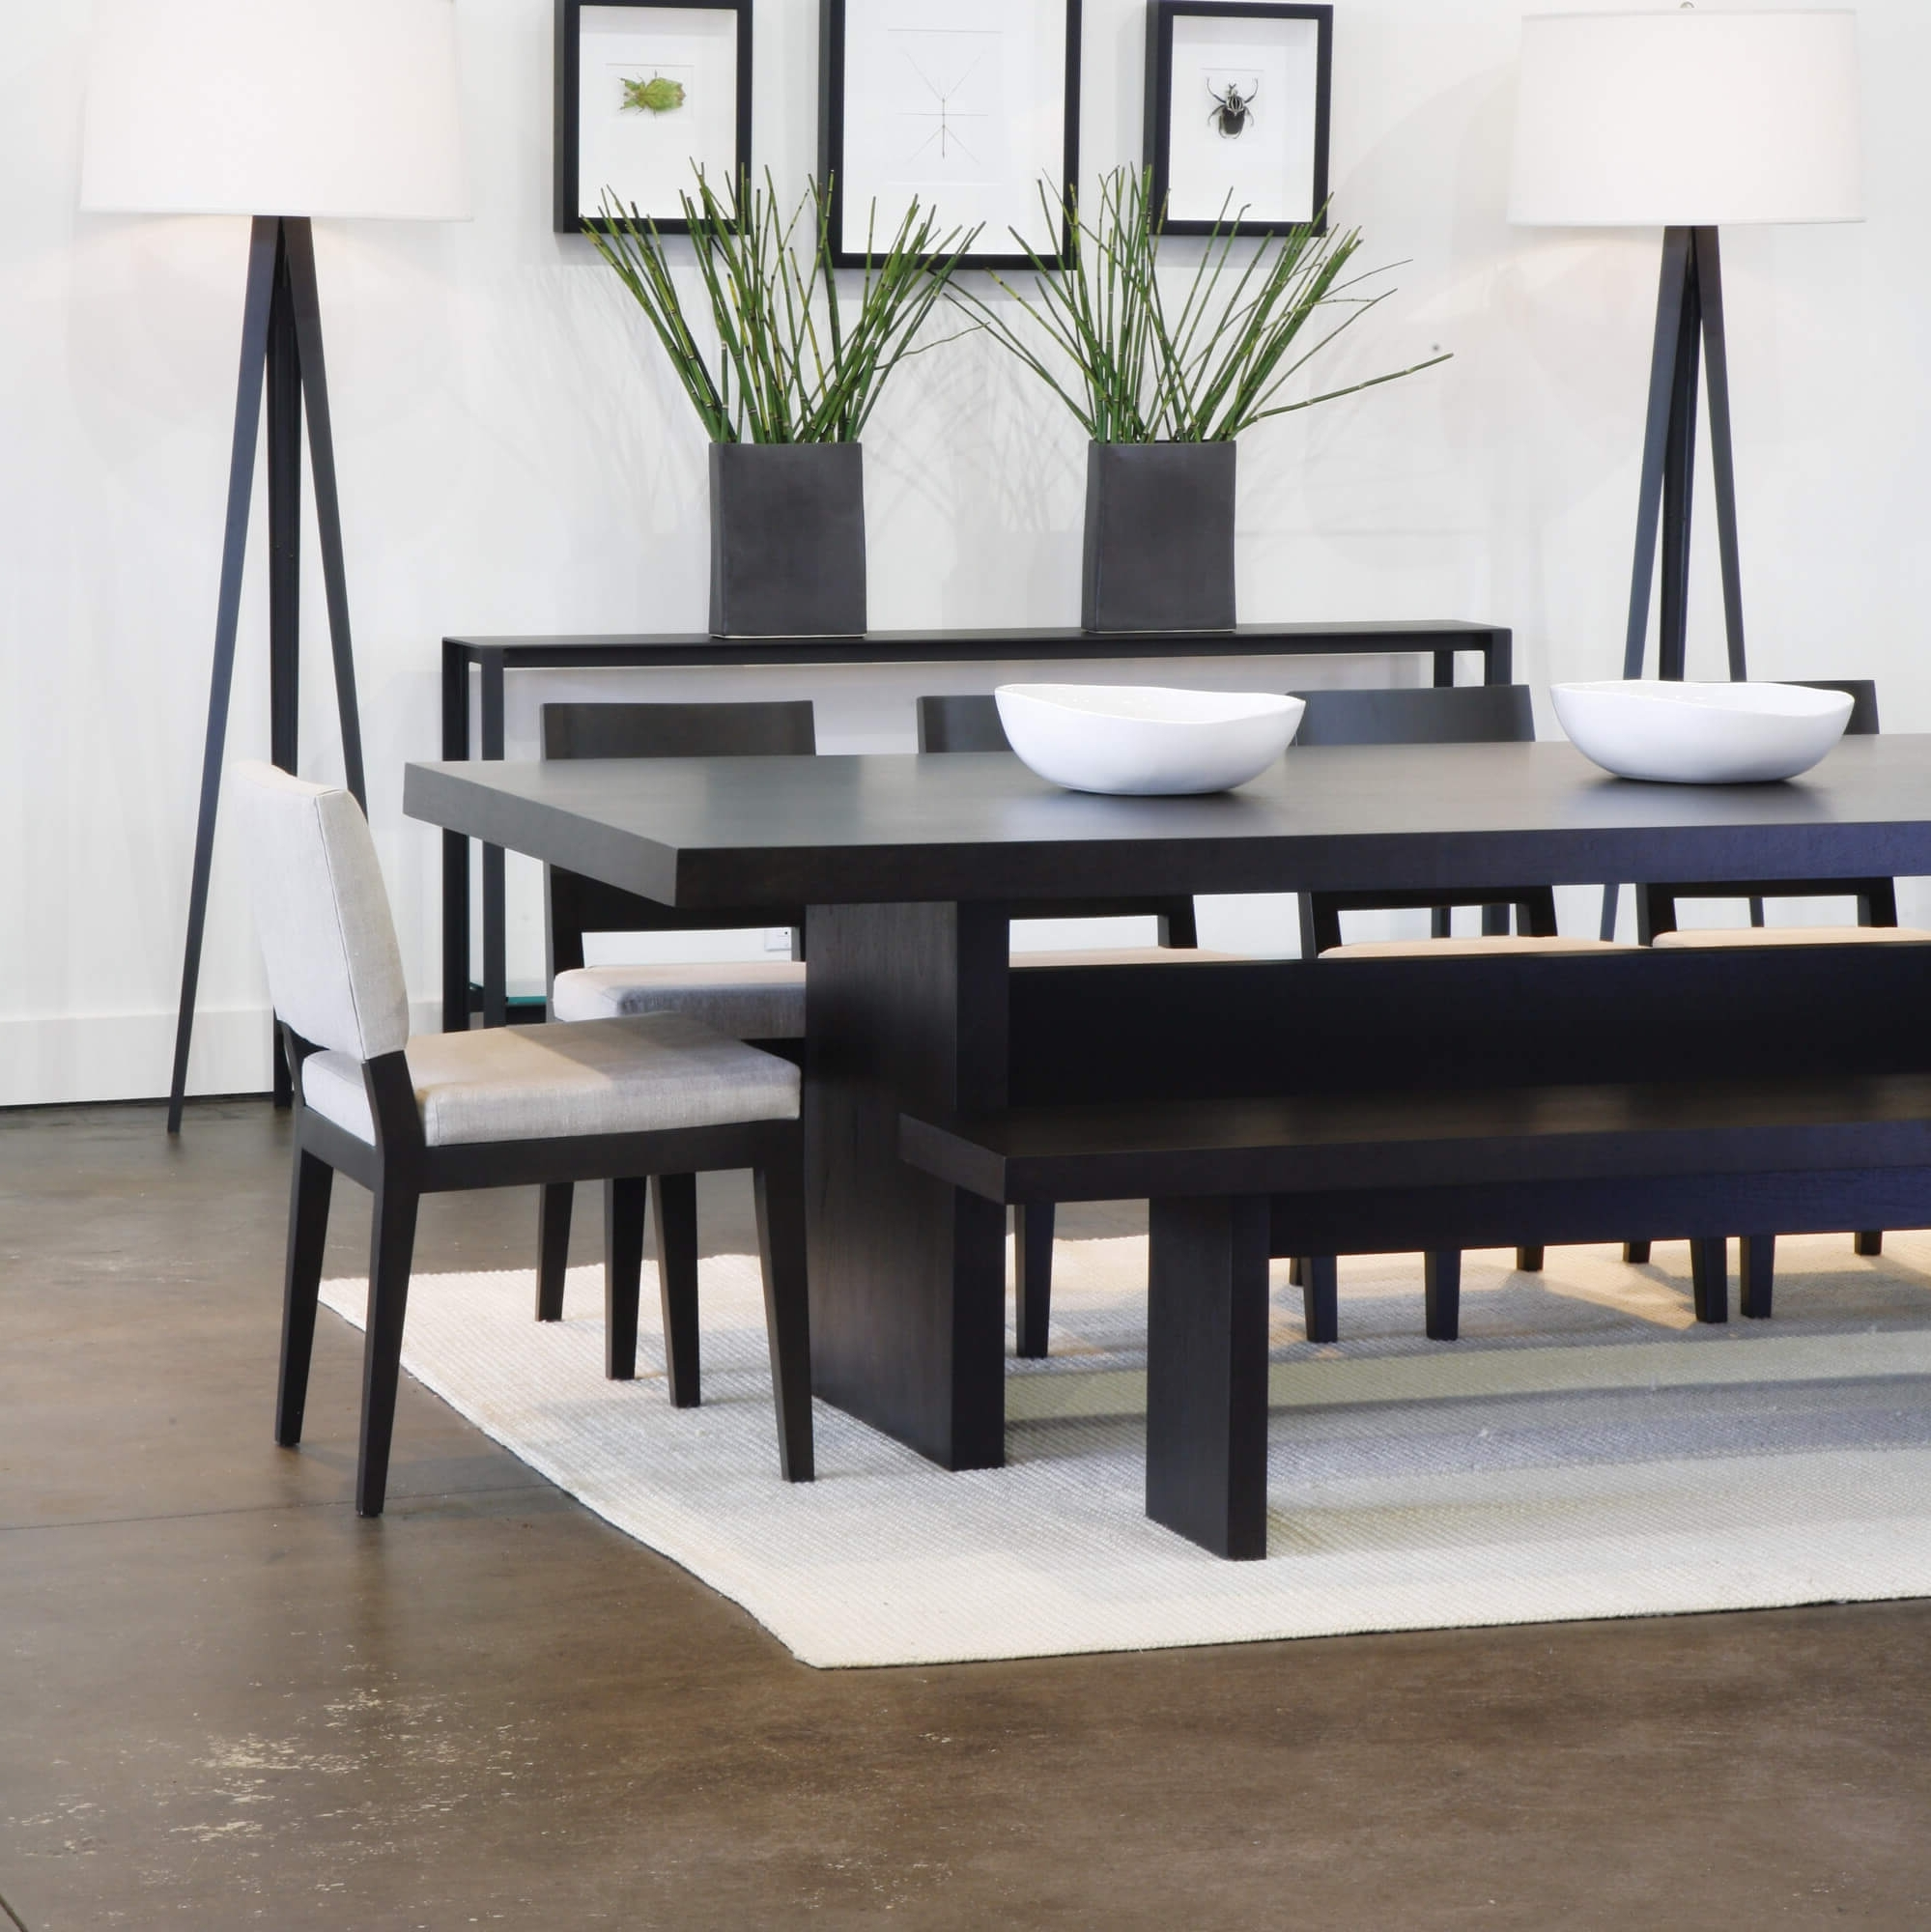 26 Dining Room Sets (Big And Small) With Bench Seating (2018) Throughout Widely Used Contemporary Dining Tables Sets (View 2 of 25)